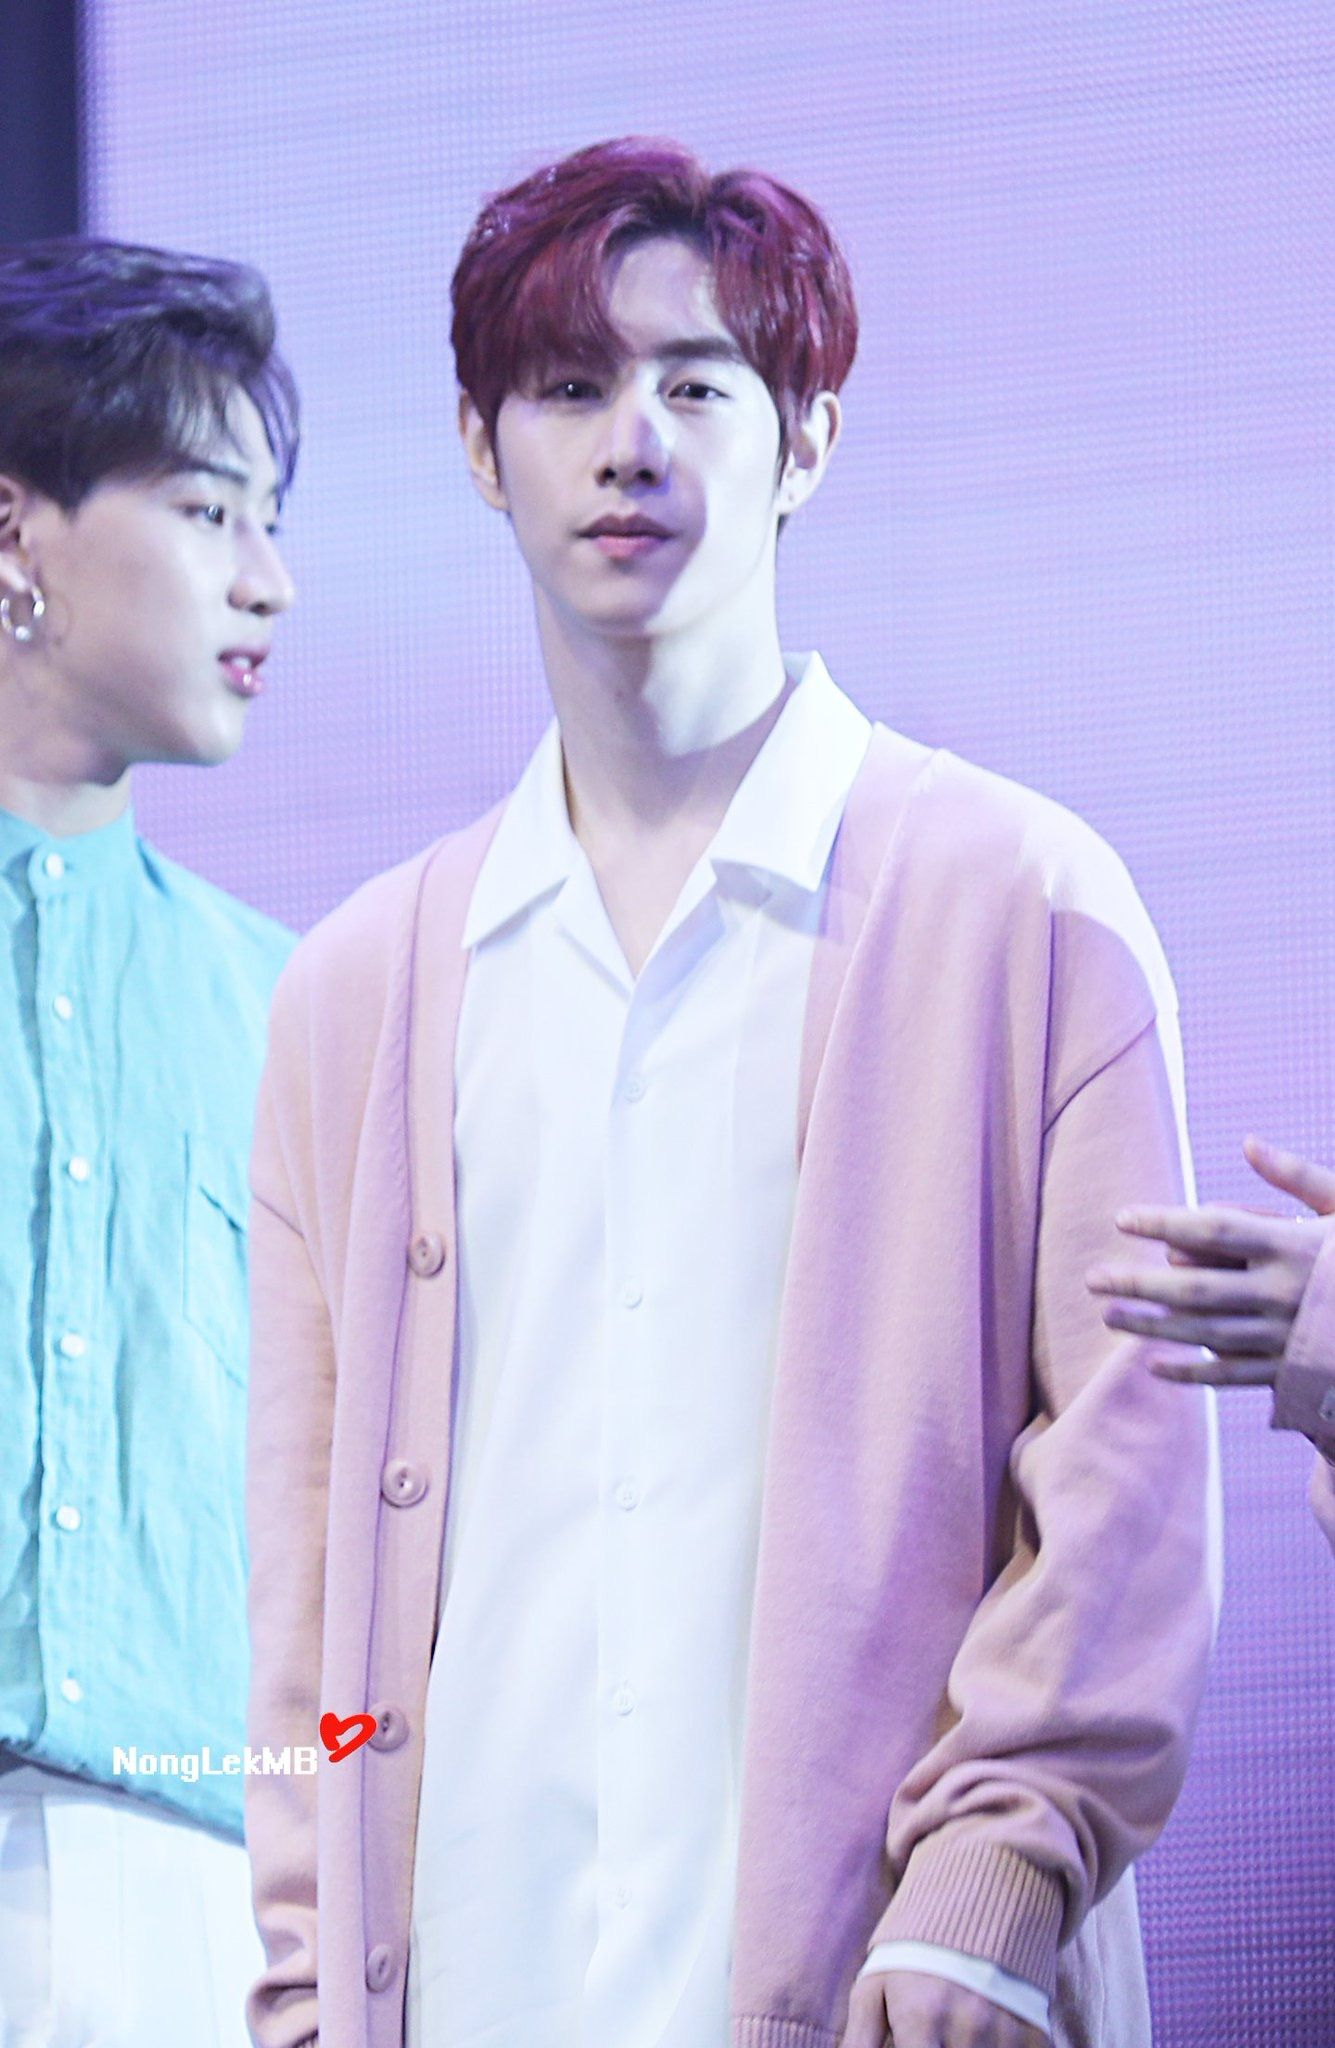 Pin by bryony fairytale on mark tuan pinterest got mark tuan